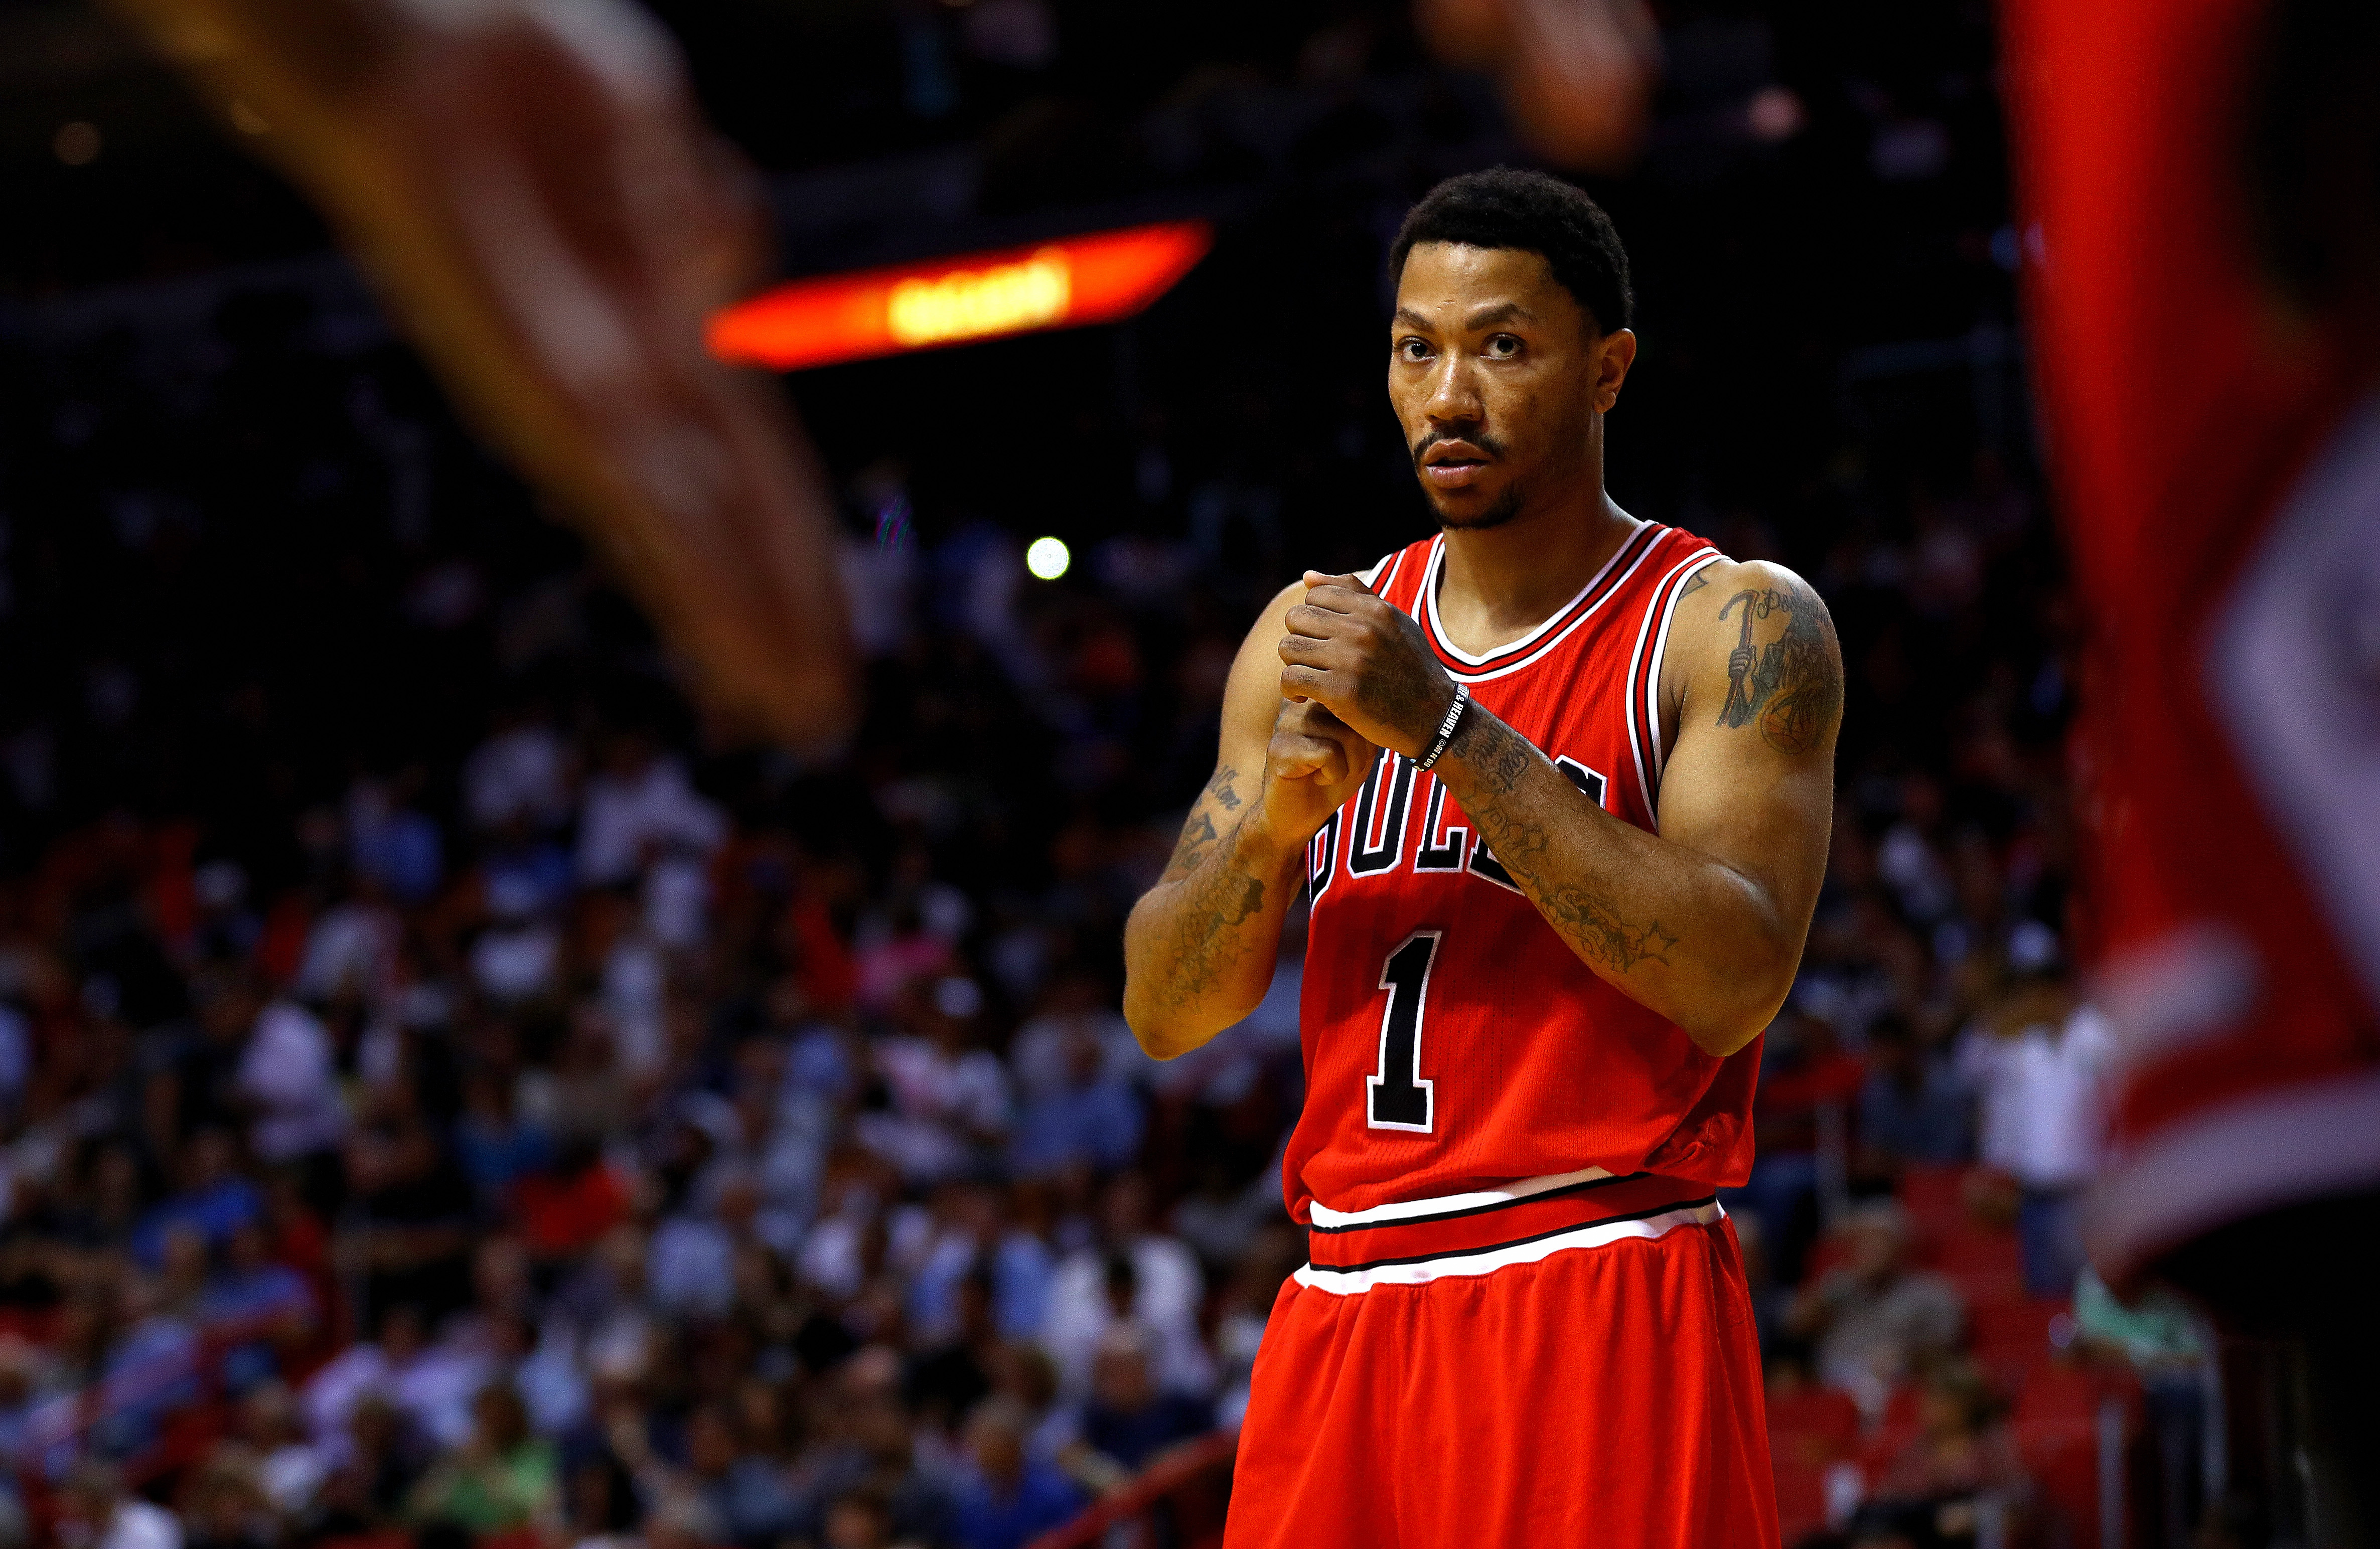 Derrick Rose traded to Knicks in deal involving Robin Lopez